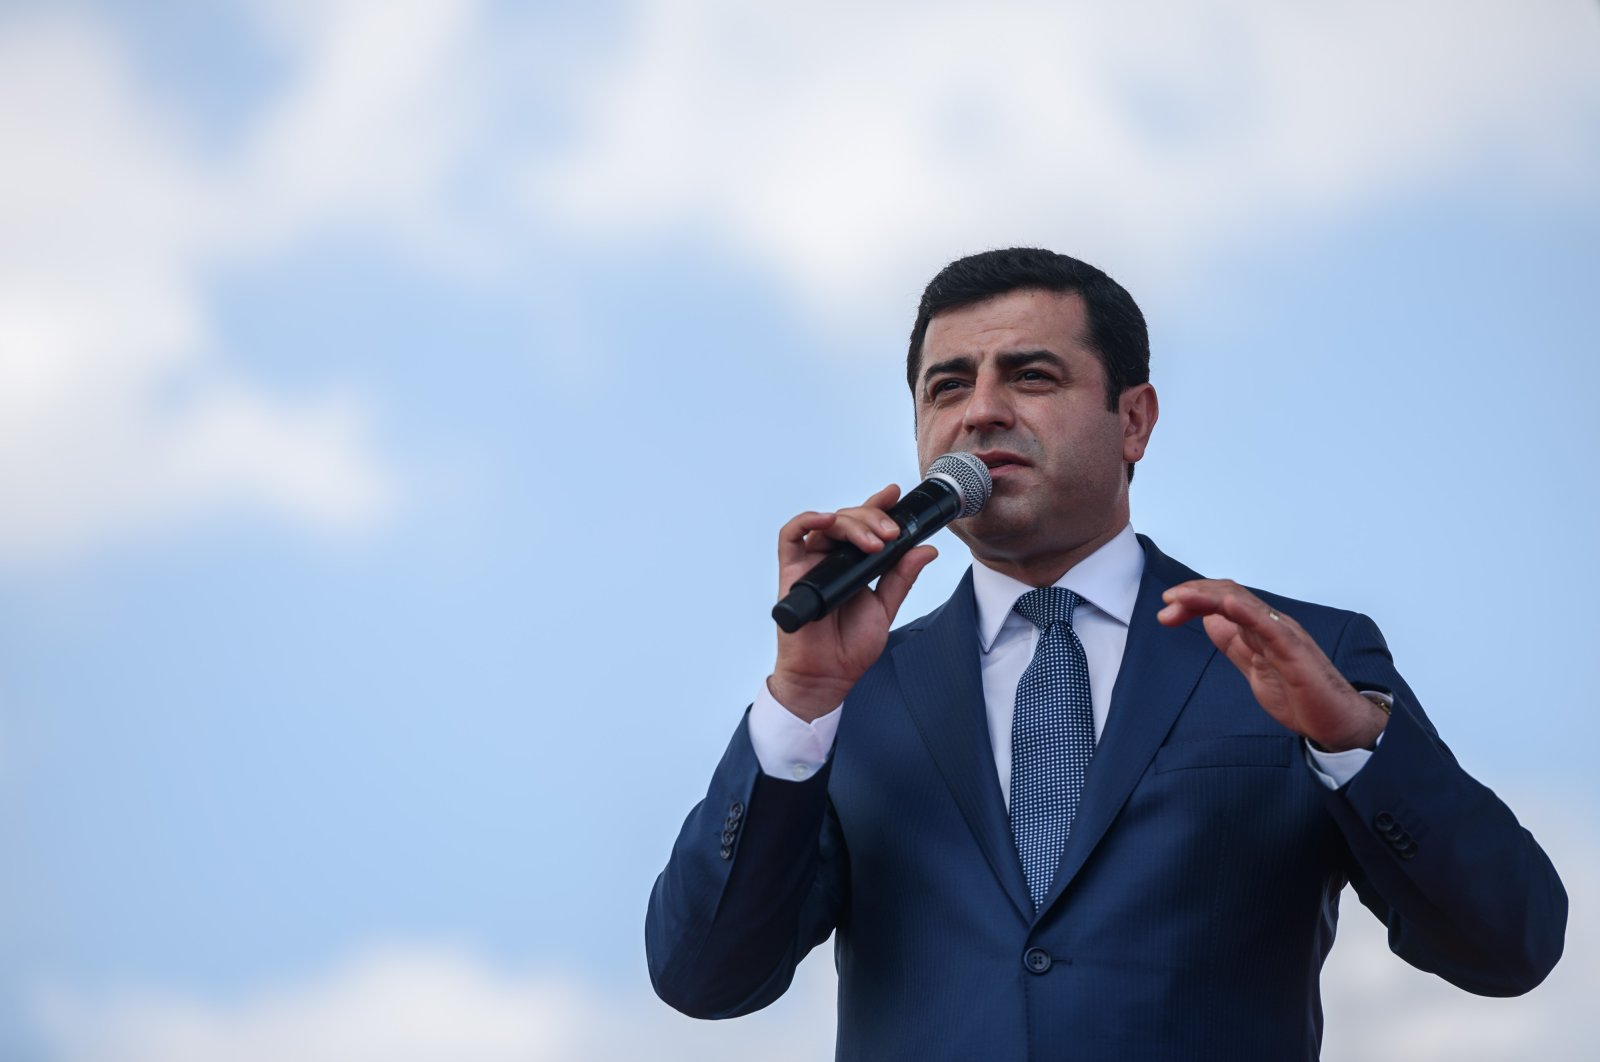 In this file photo taken on June 5, 2016 the then-co-chair of the pro-PKK HDP Selahattin Demirtaş delivers a speech in Istanbul during a rally on the lawmakers' immunity. (AFP Photo)